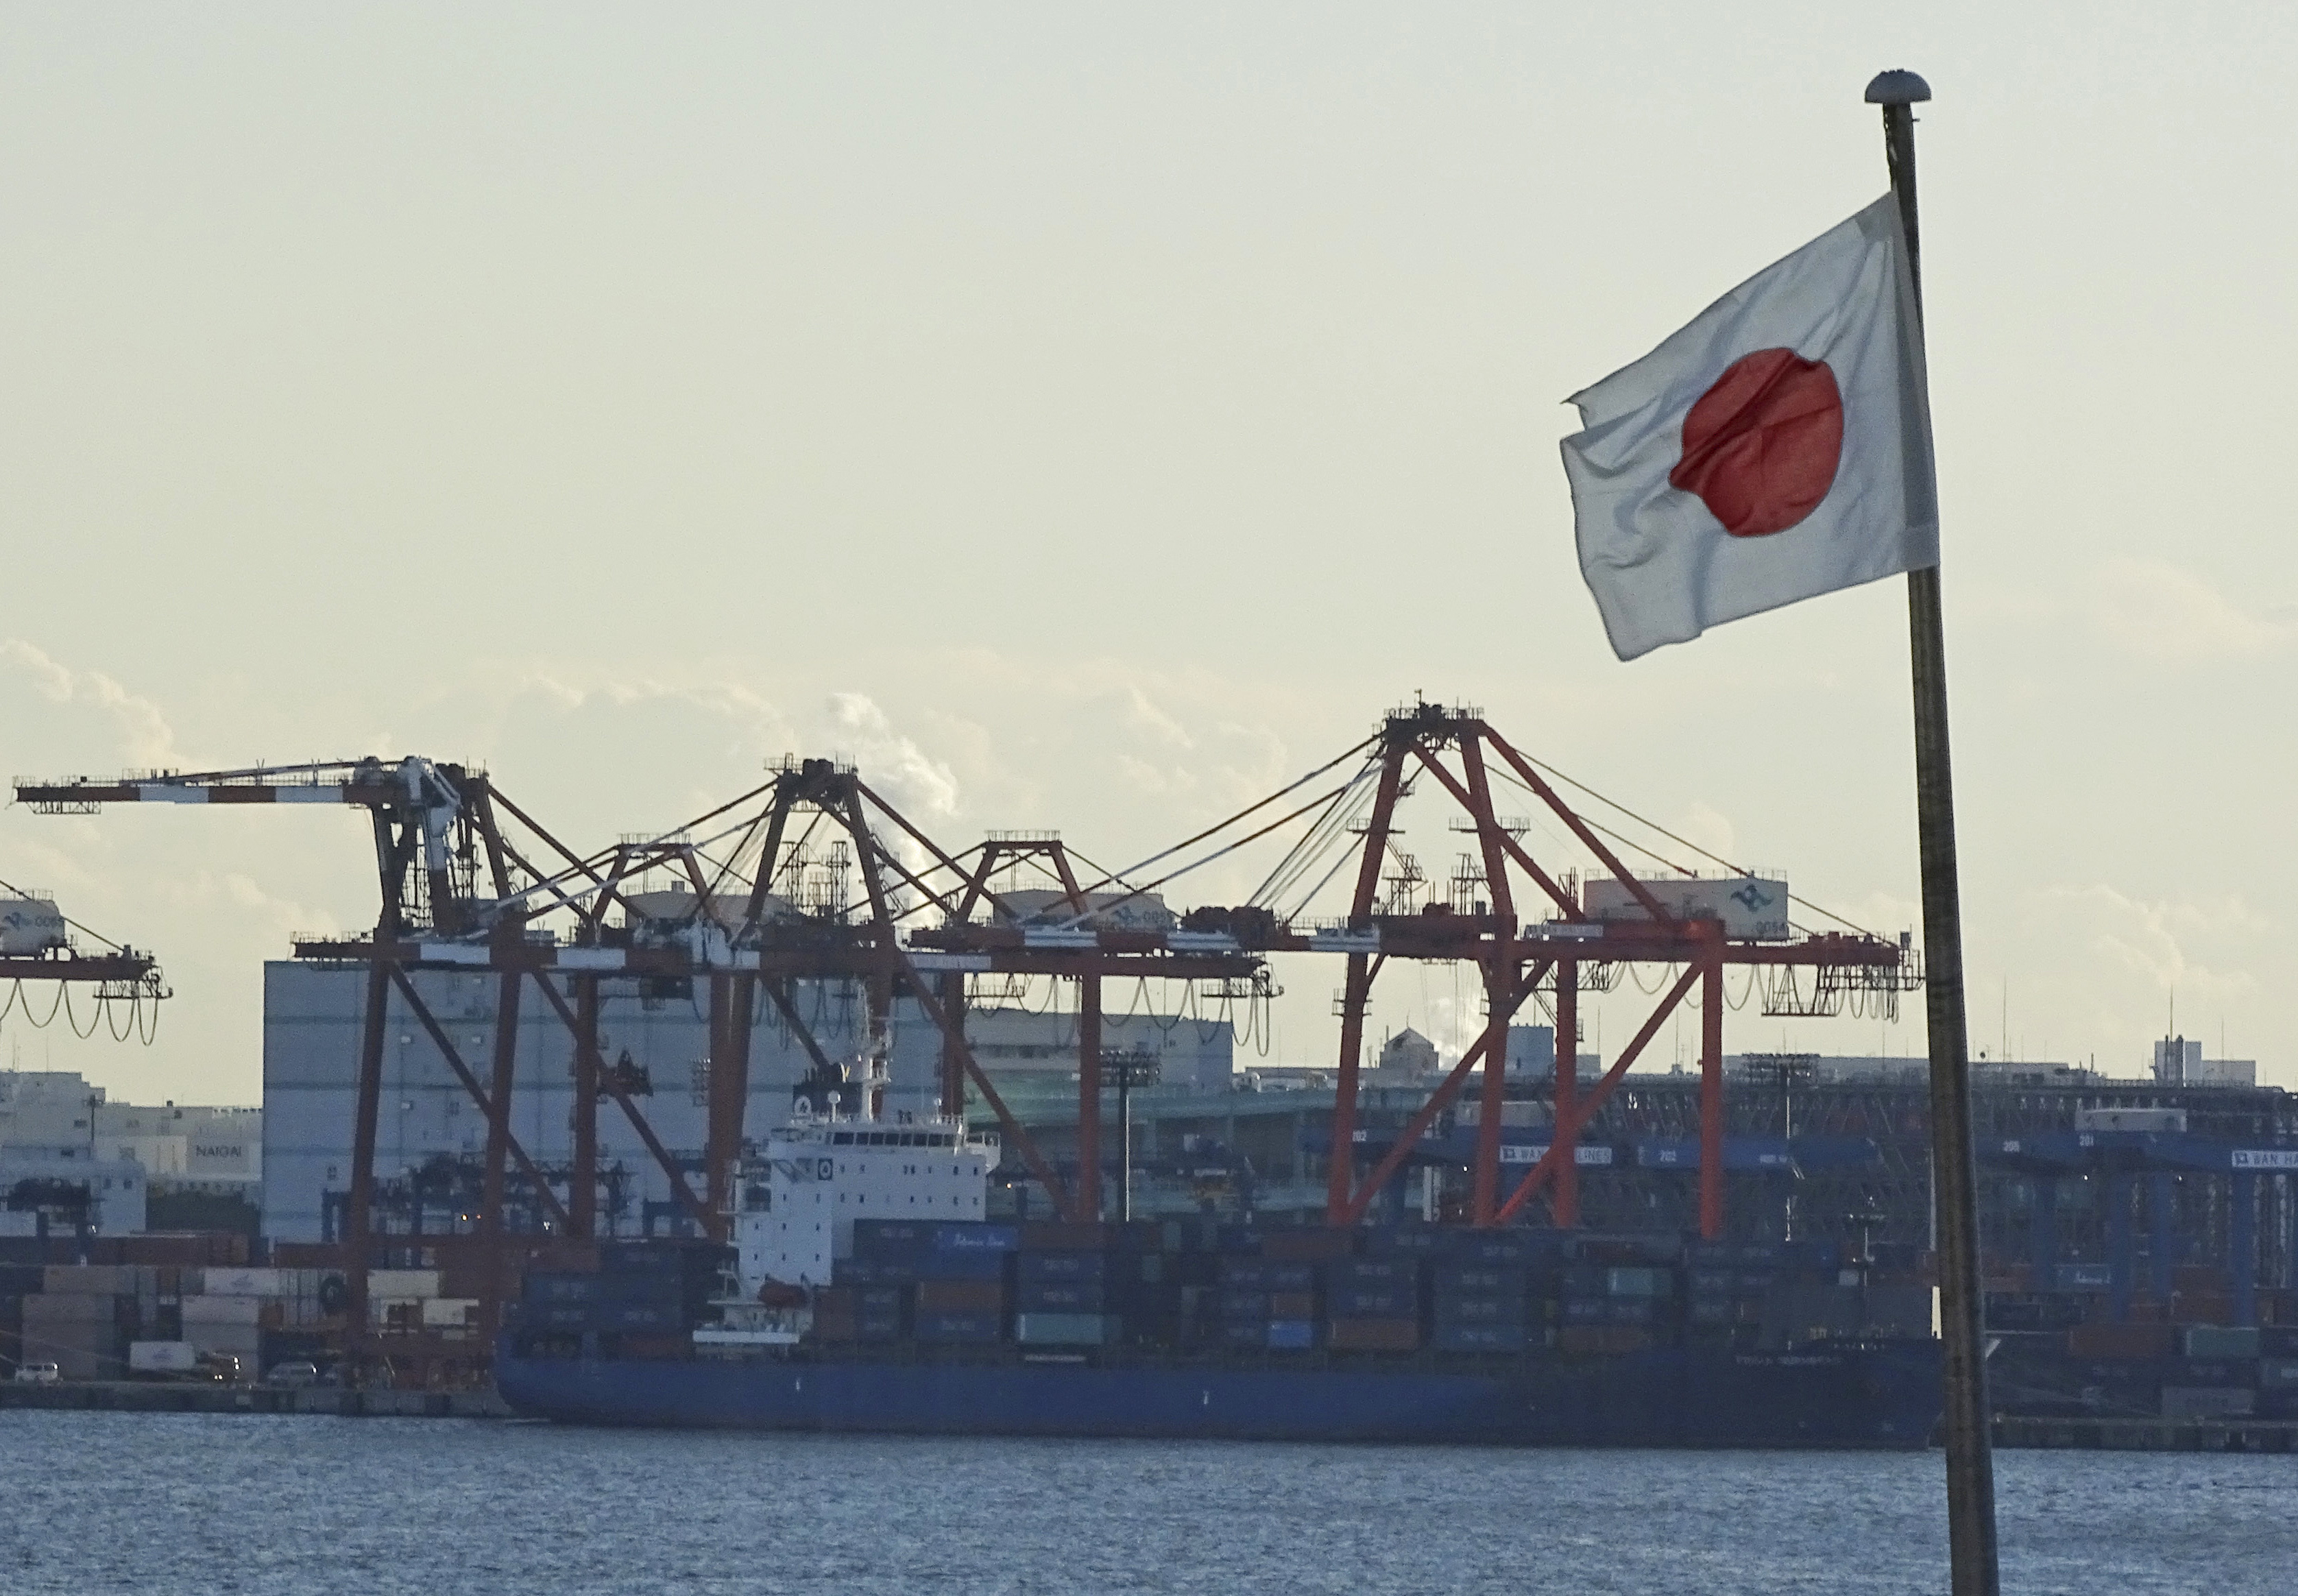 Japan's trade surges in July on strong demand in China, US